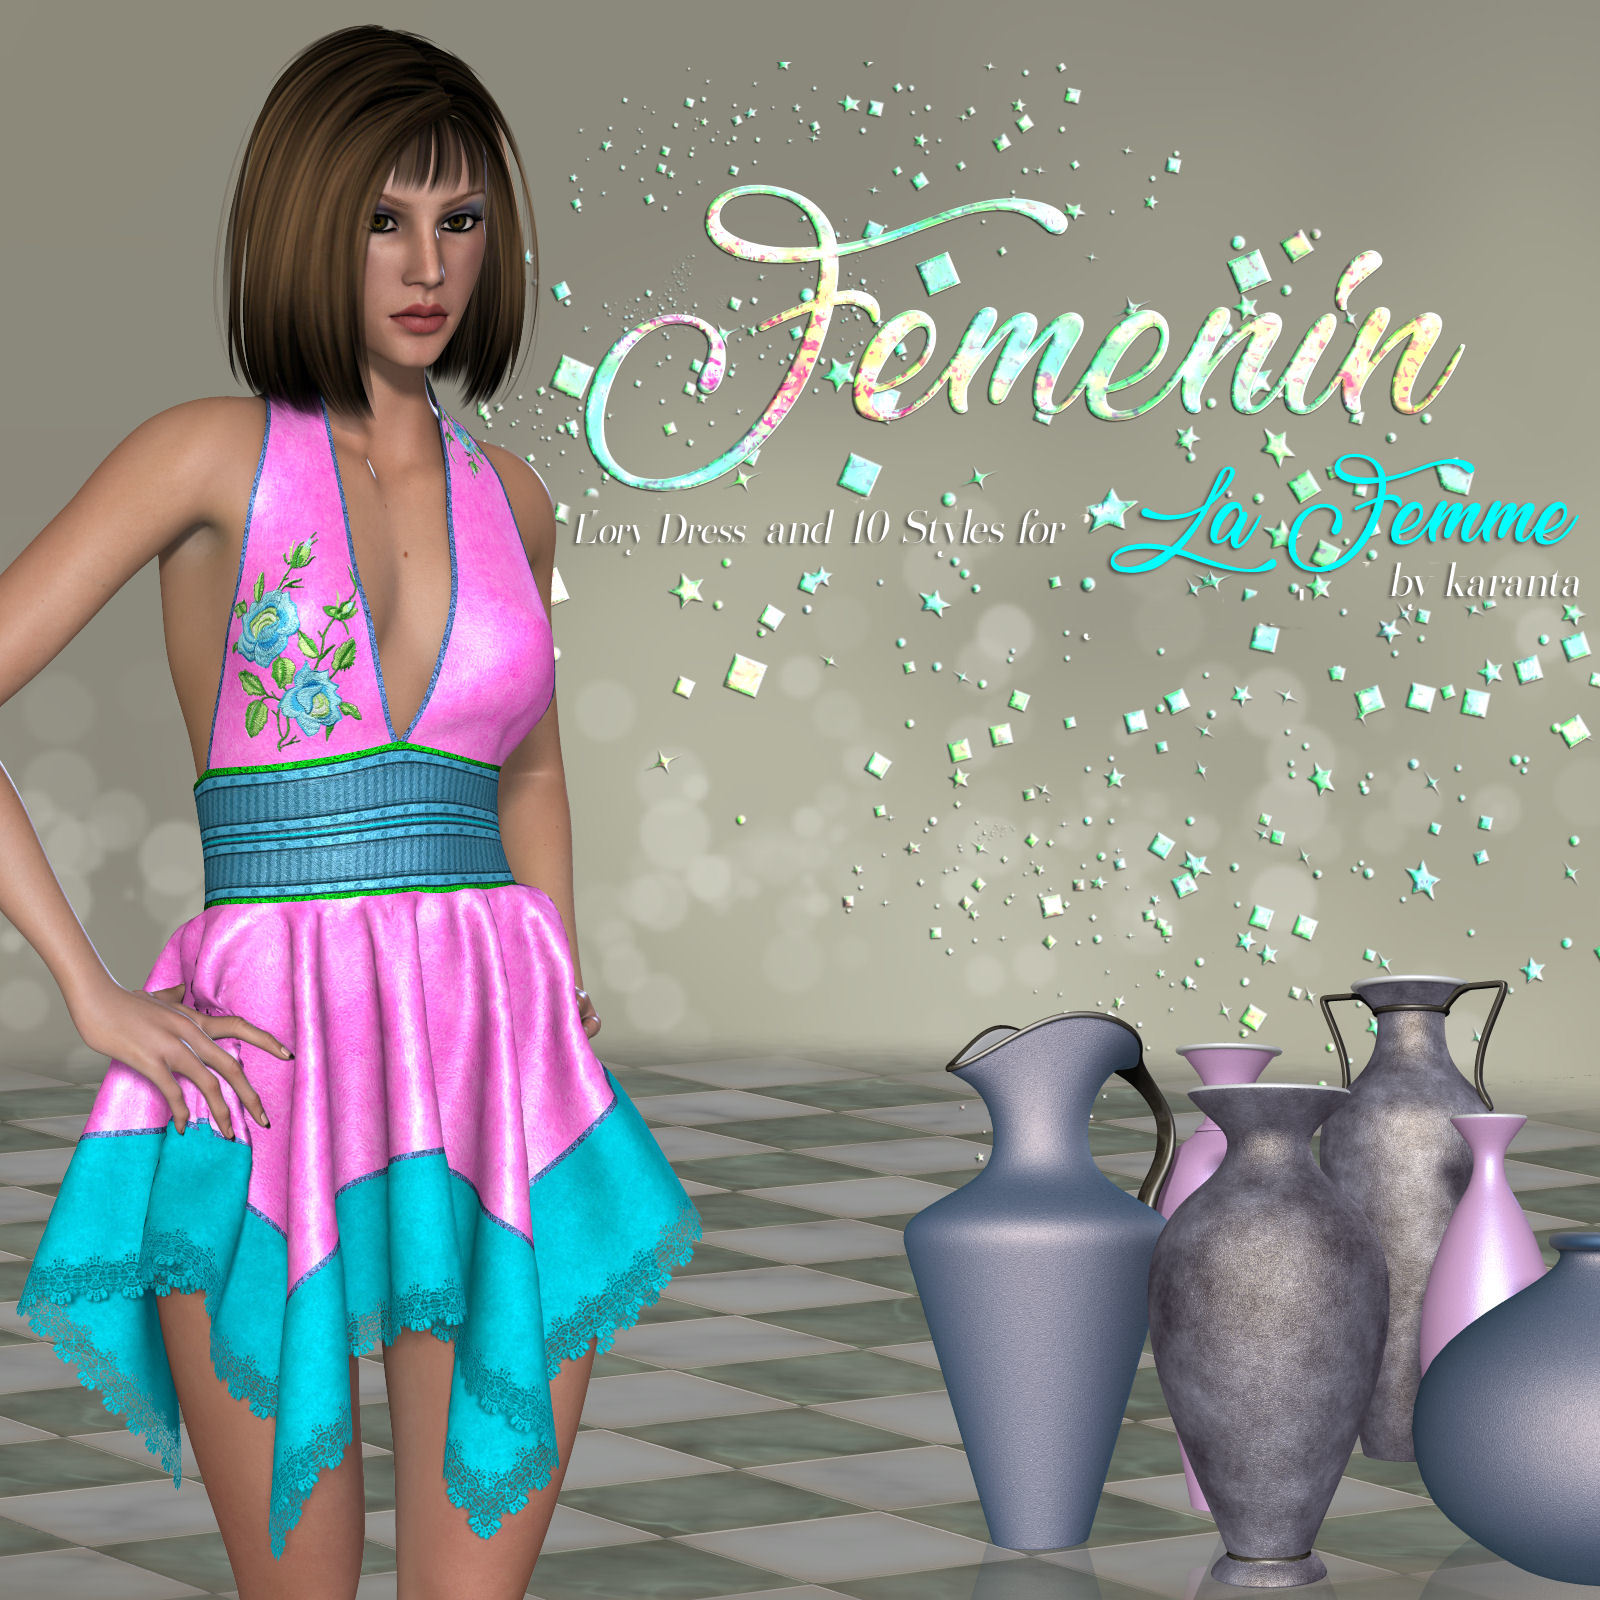 DA-Femenin for Lory Dress  for La Femme